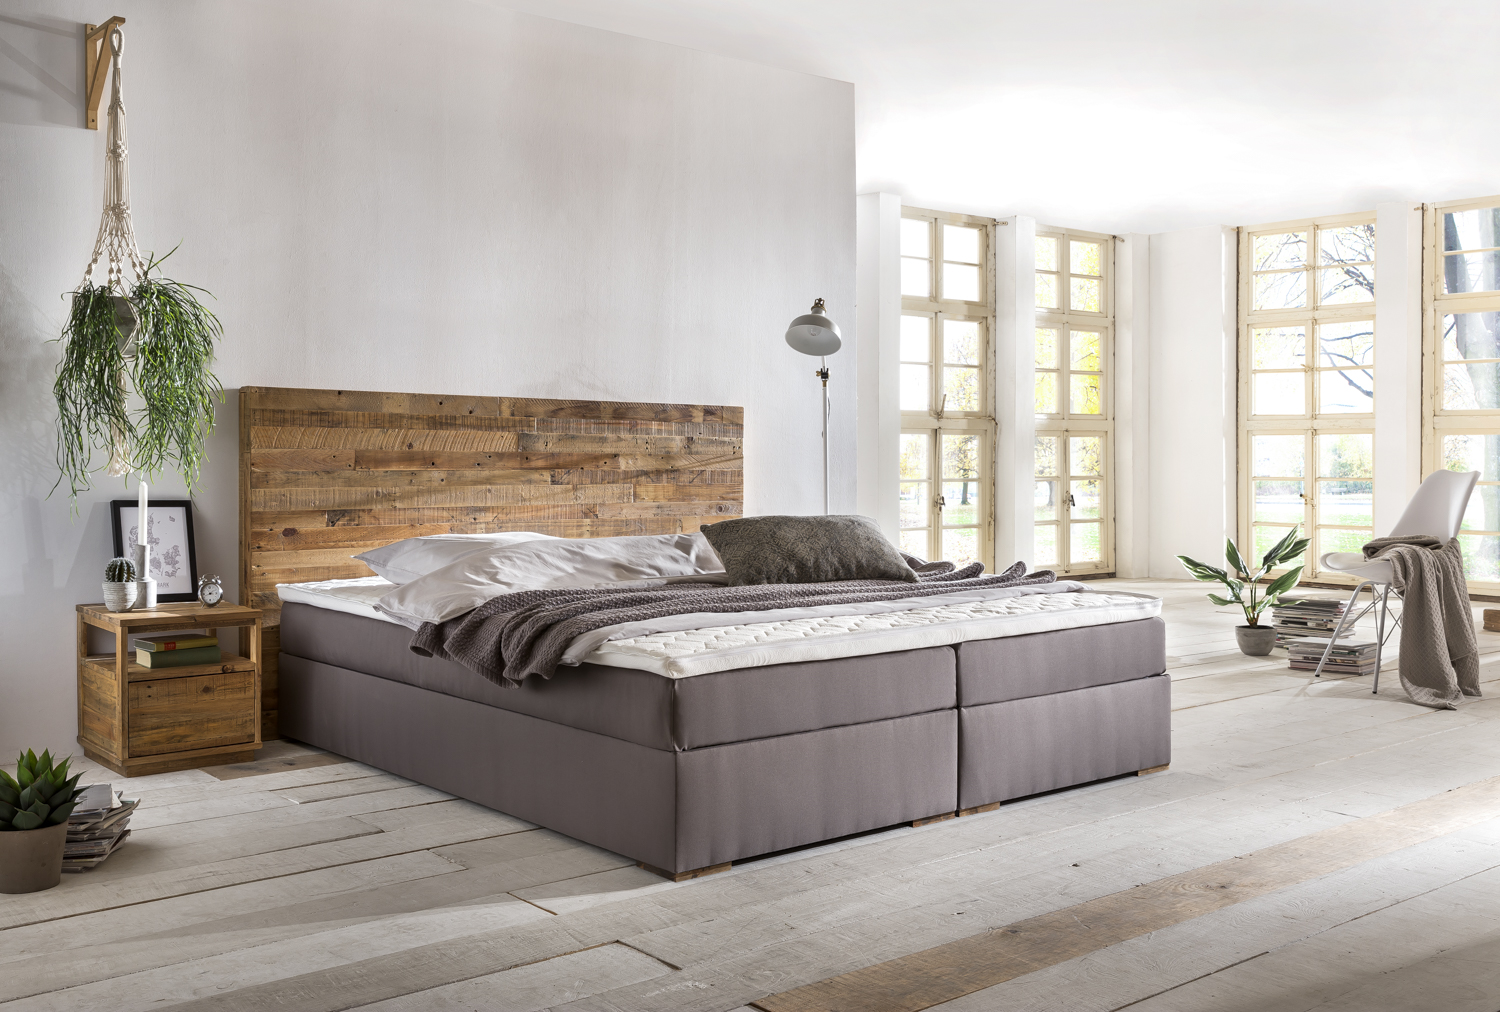 boxspringbett hastings 180x200 grau kopfteil echt holz hotelbett betten m bel ebay. Black Bedroom Furniture Sets. Home Design Ideas